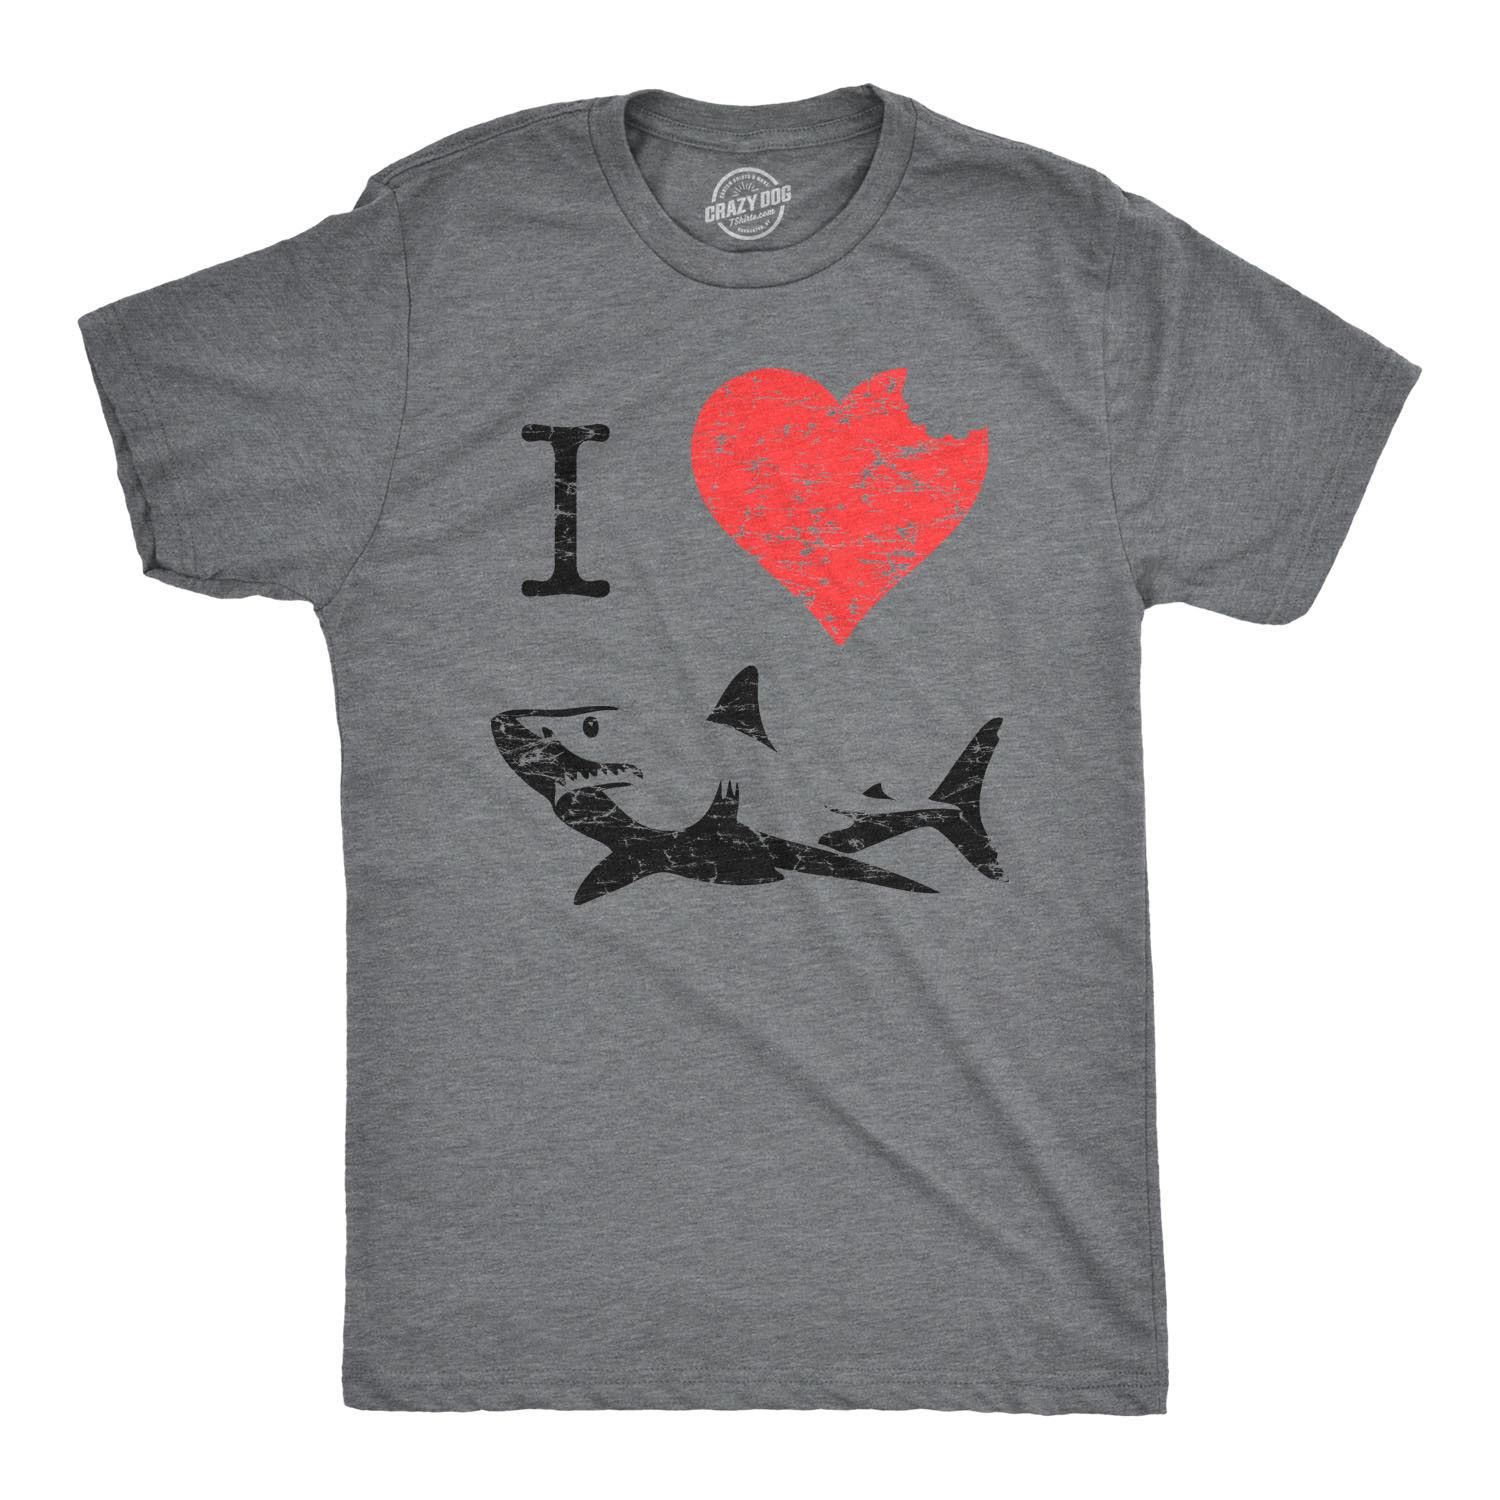 aad48d3a I Love Sharks T Shirt Heart Classic Shark Bite Ocean Great White Tee  Fashion Style Men Tee 2019 Fashion T Shirt, Print On Tee Shirt Go T Shirts  From ...